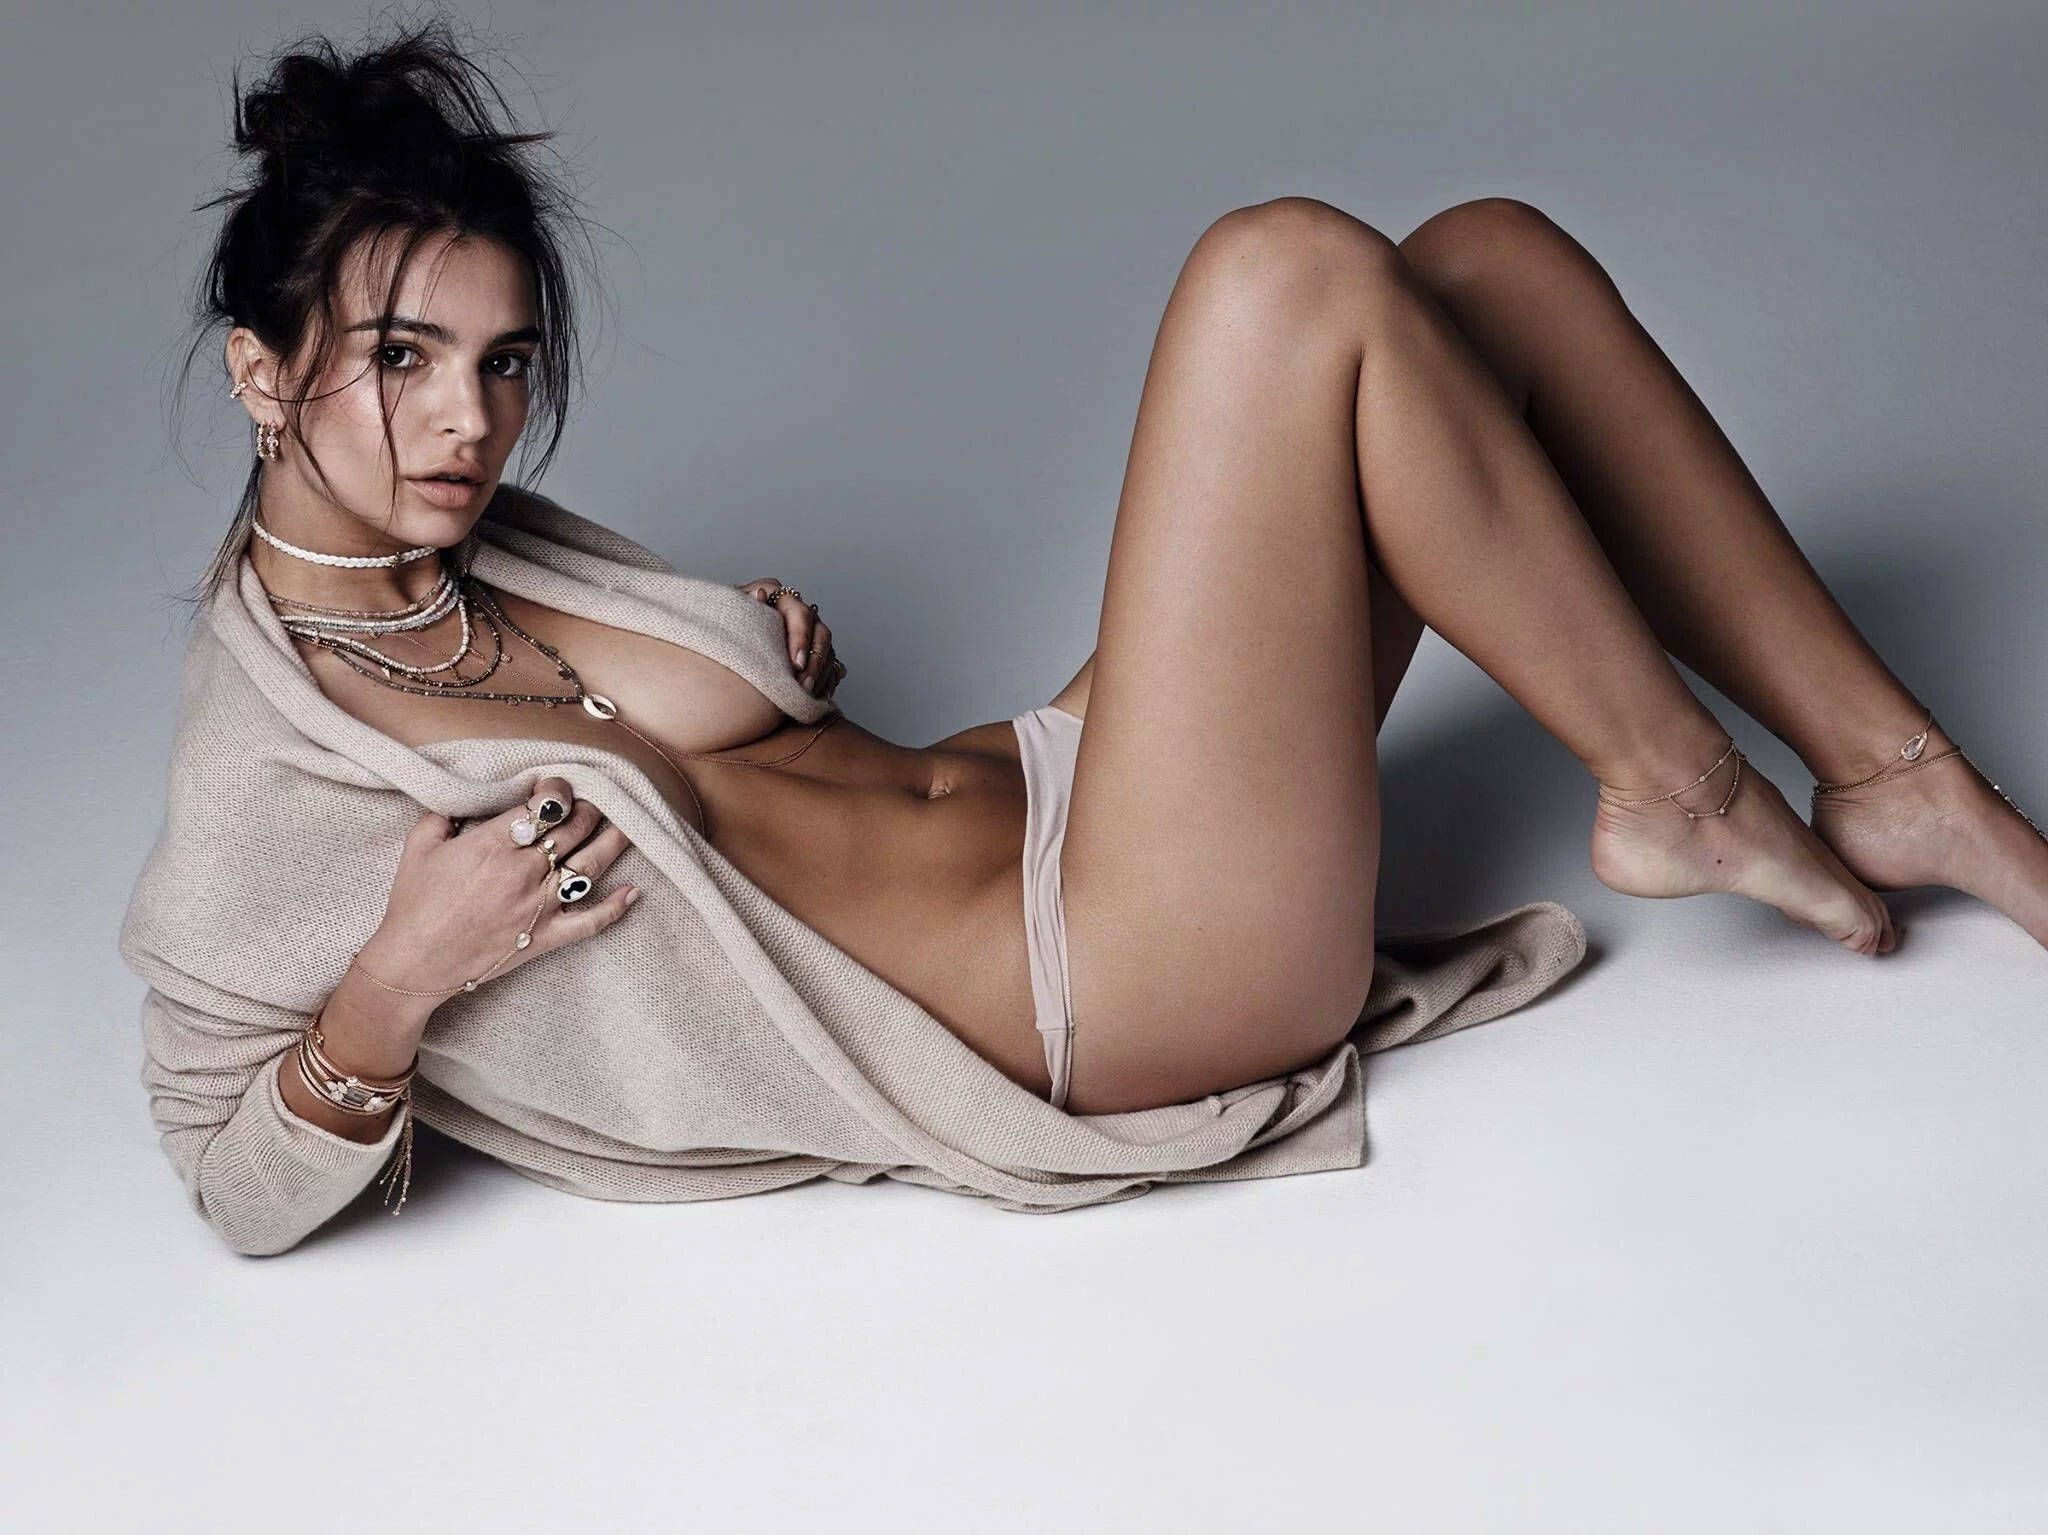 Emily Ratajkowski Back To Doing Naked Pictures nude (97 images)